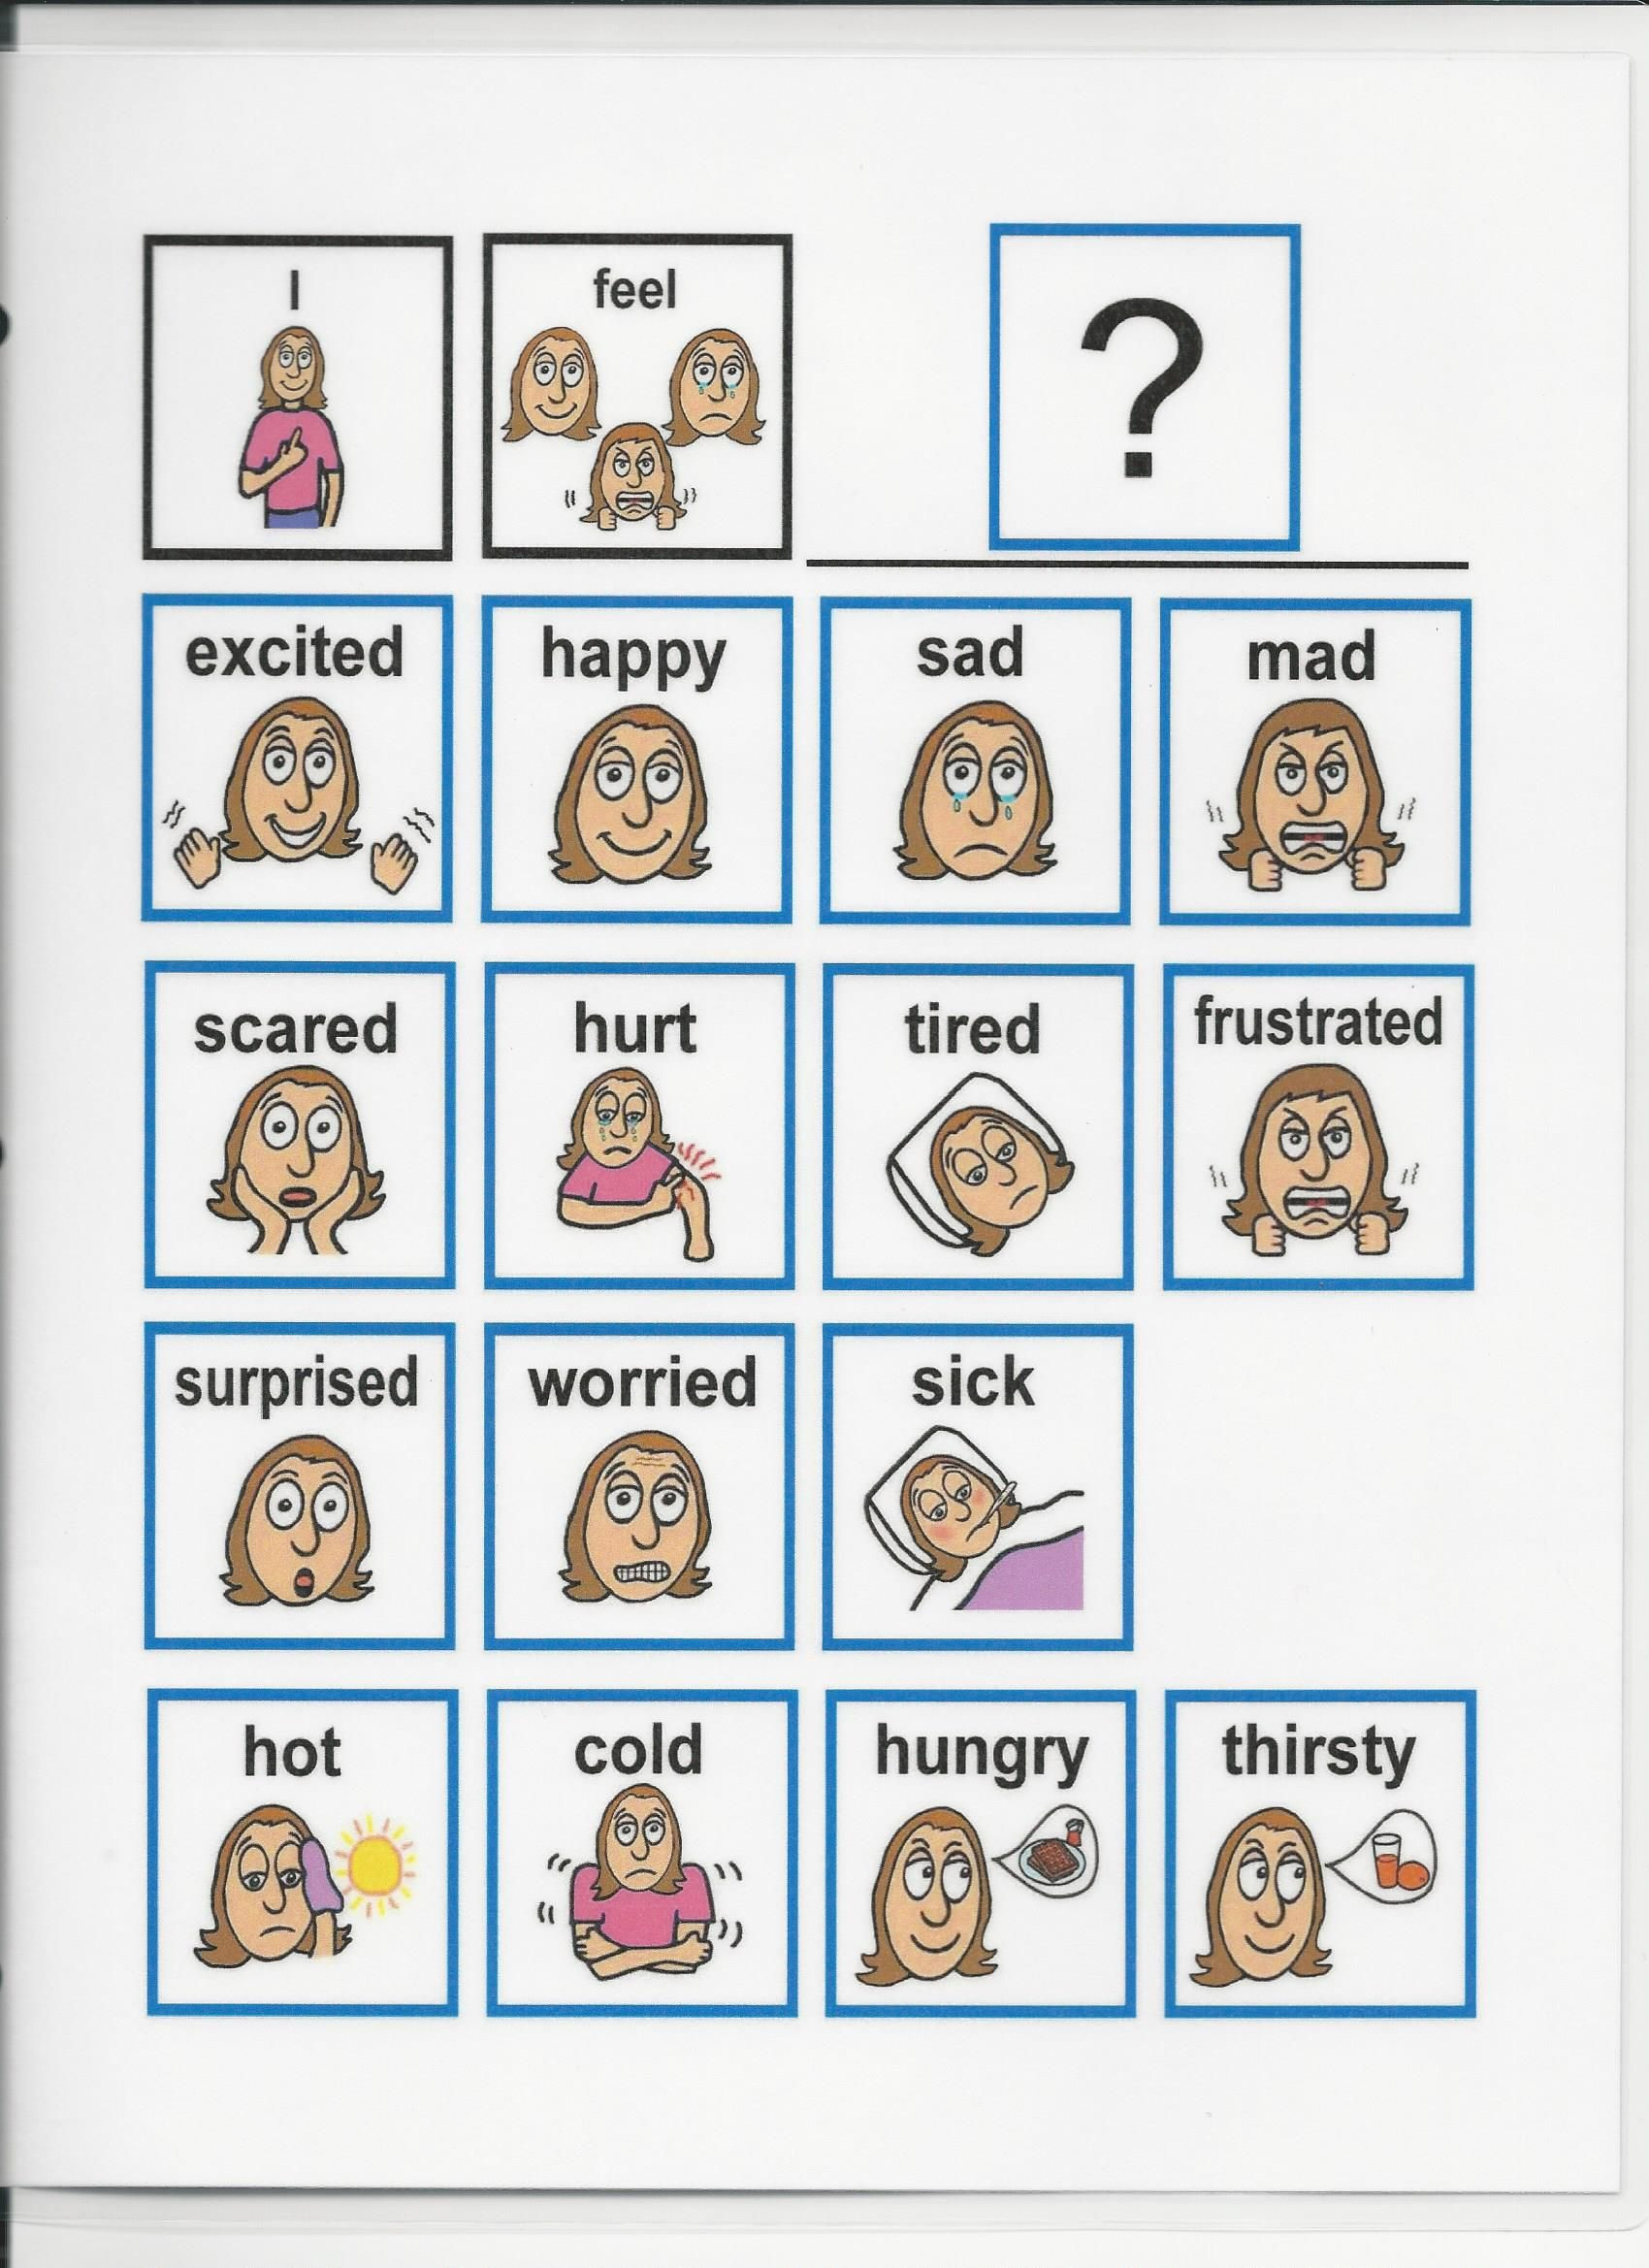 Feelings and Emotions Worksheets Printable This Chart Gives A Way for A Person to Visually Show How